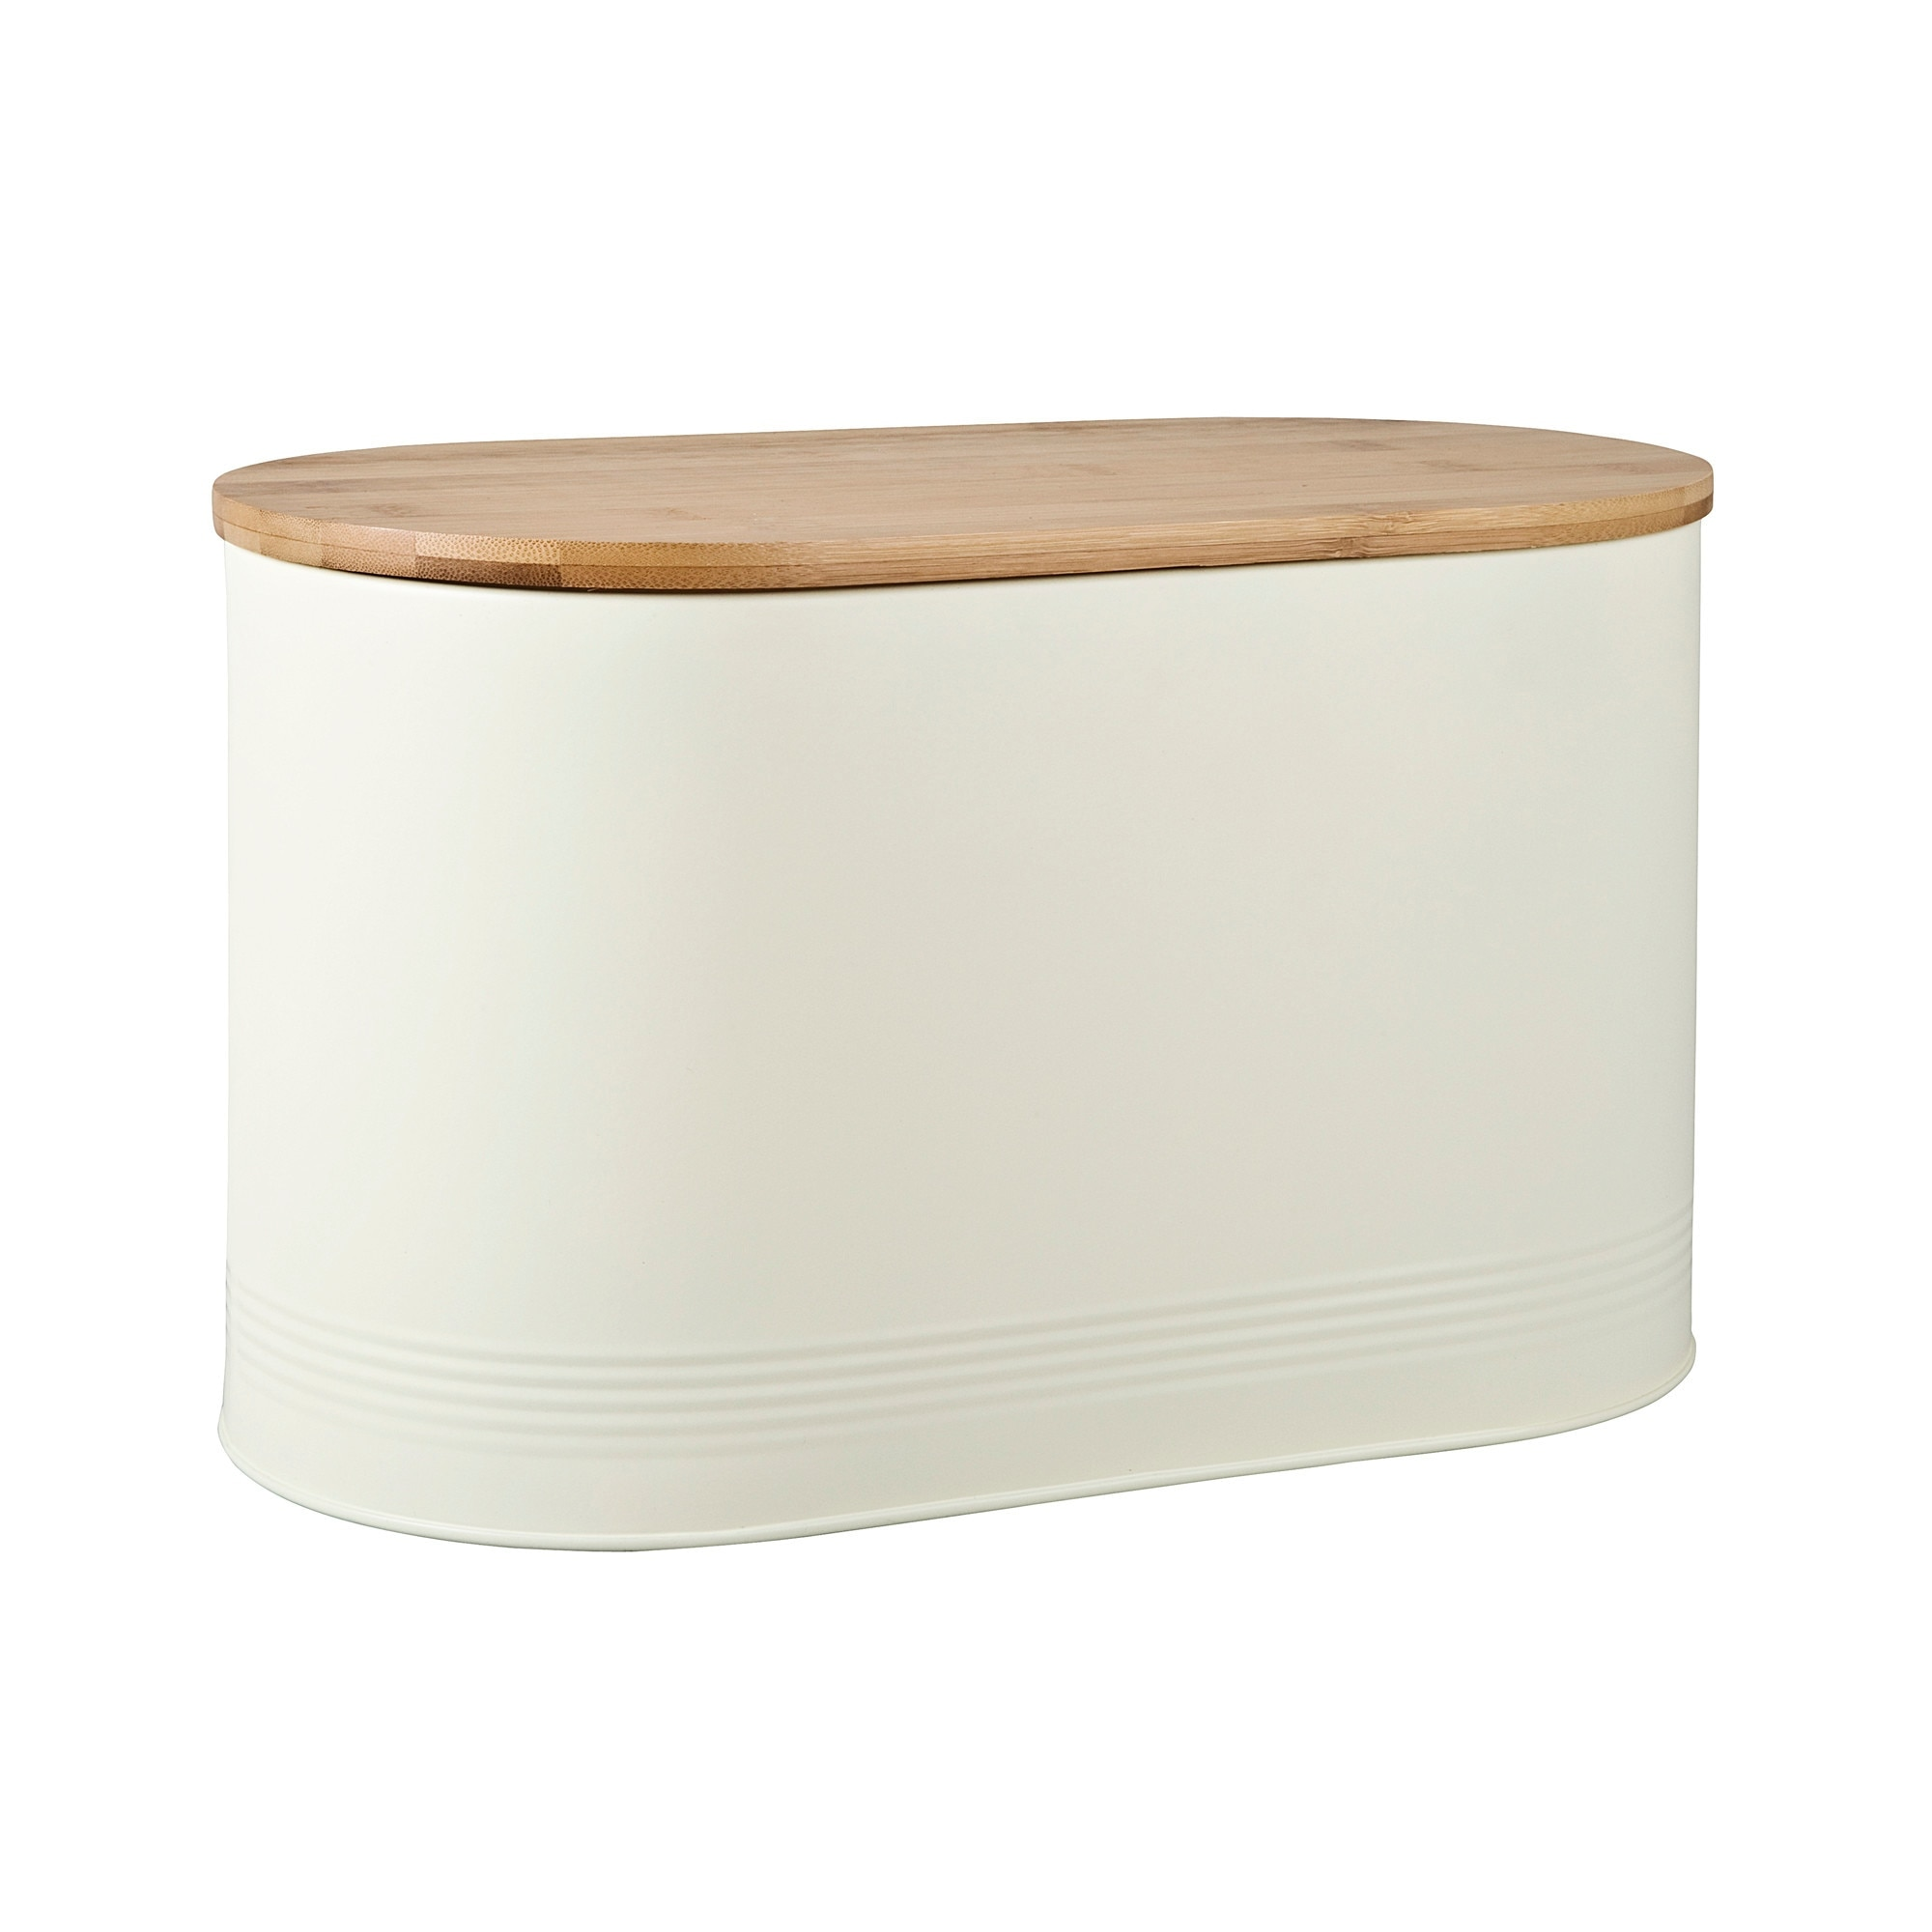 Compare prices for Bread Bin With Bamboo Lid Cream